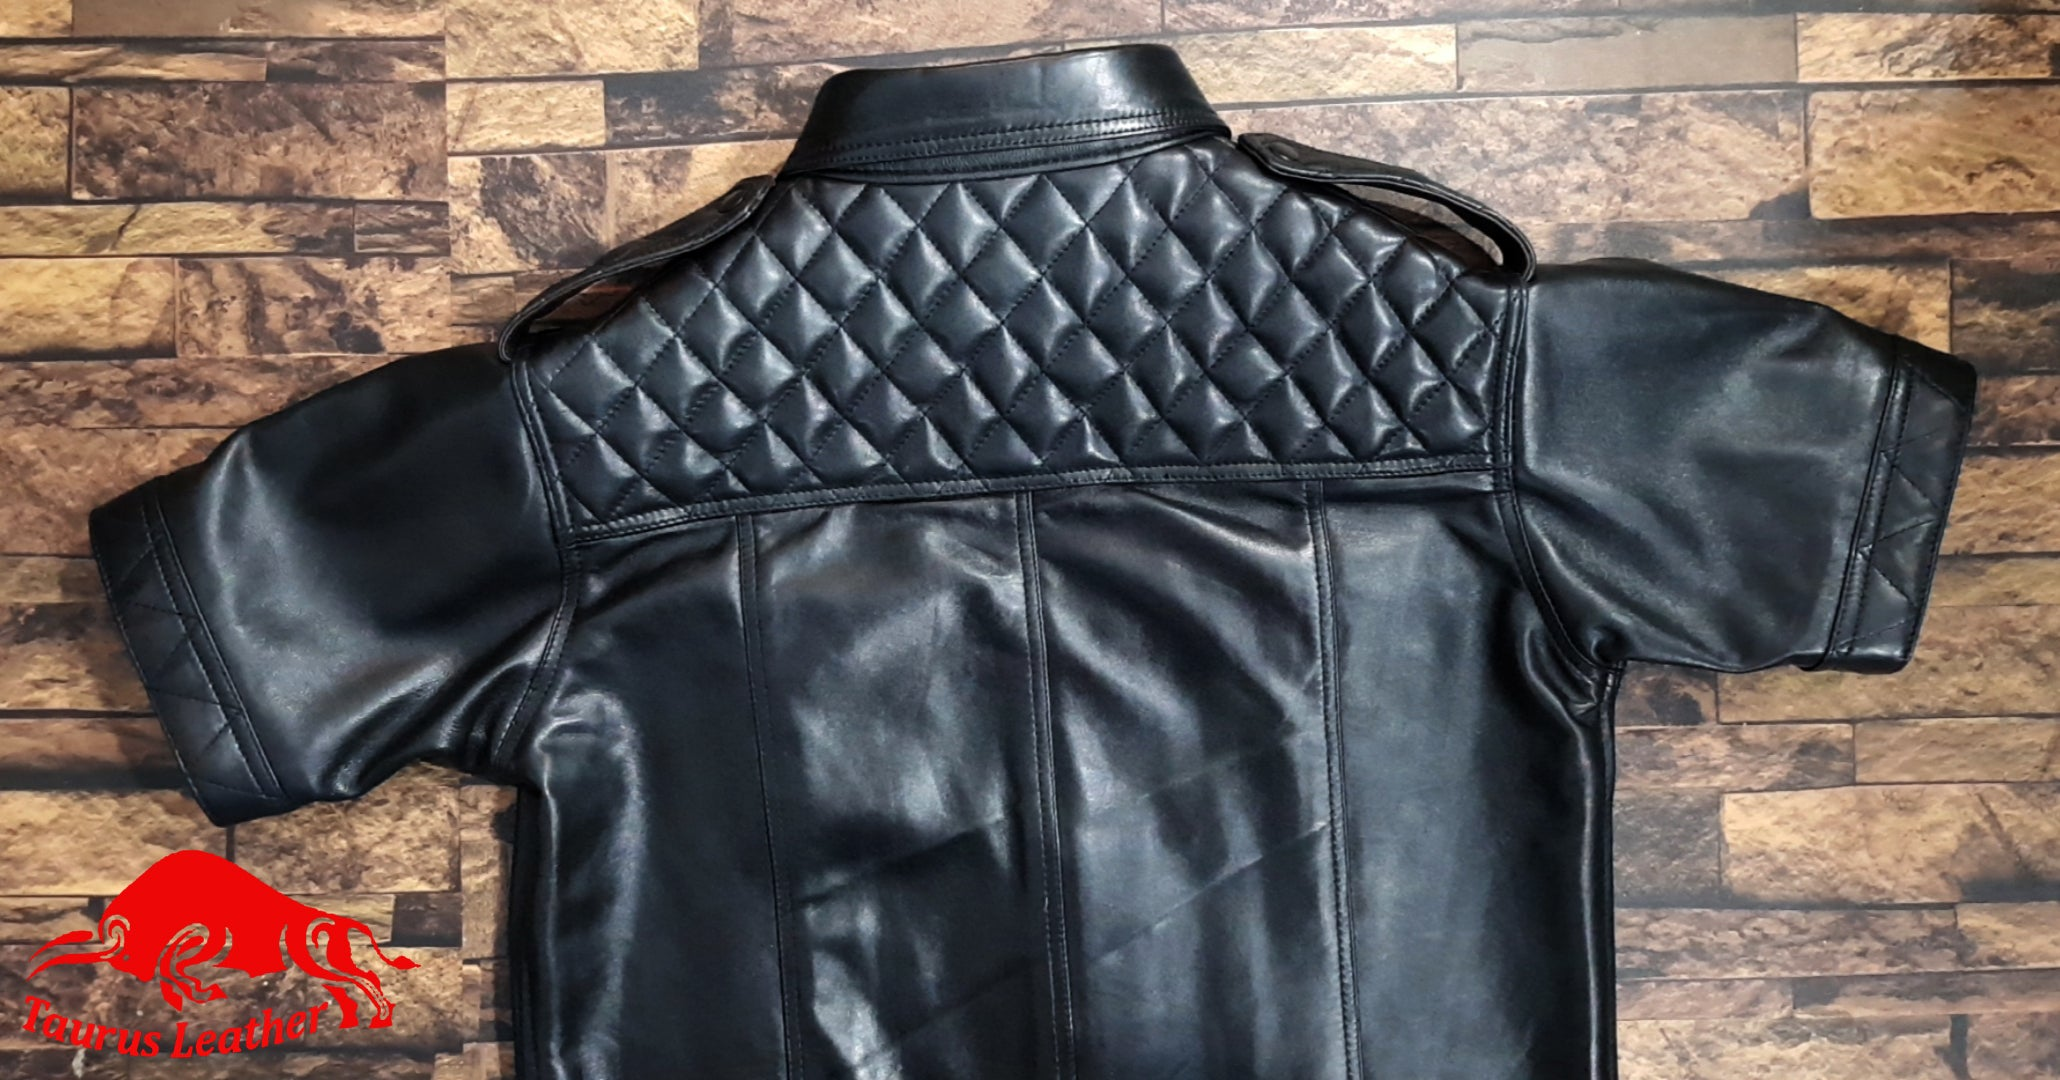 TAURUS LEATHER Black Sheep Leather Shirt With Quilted Design